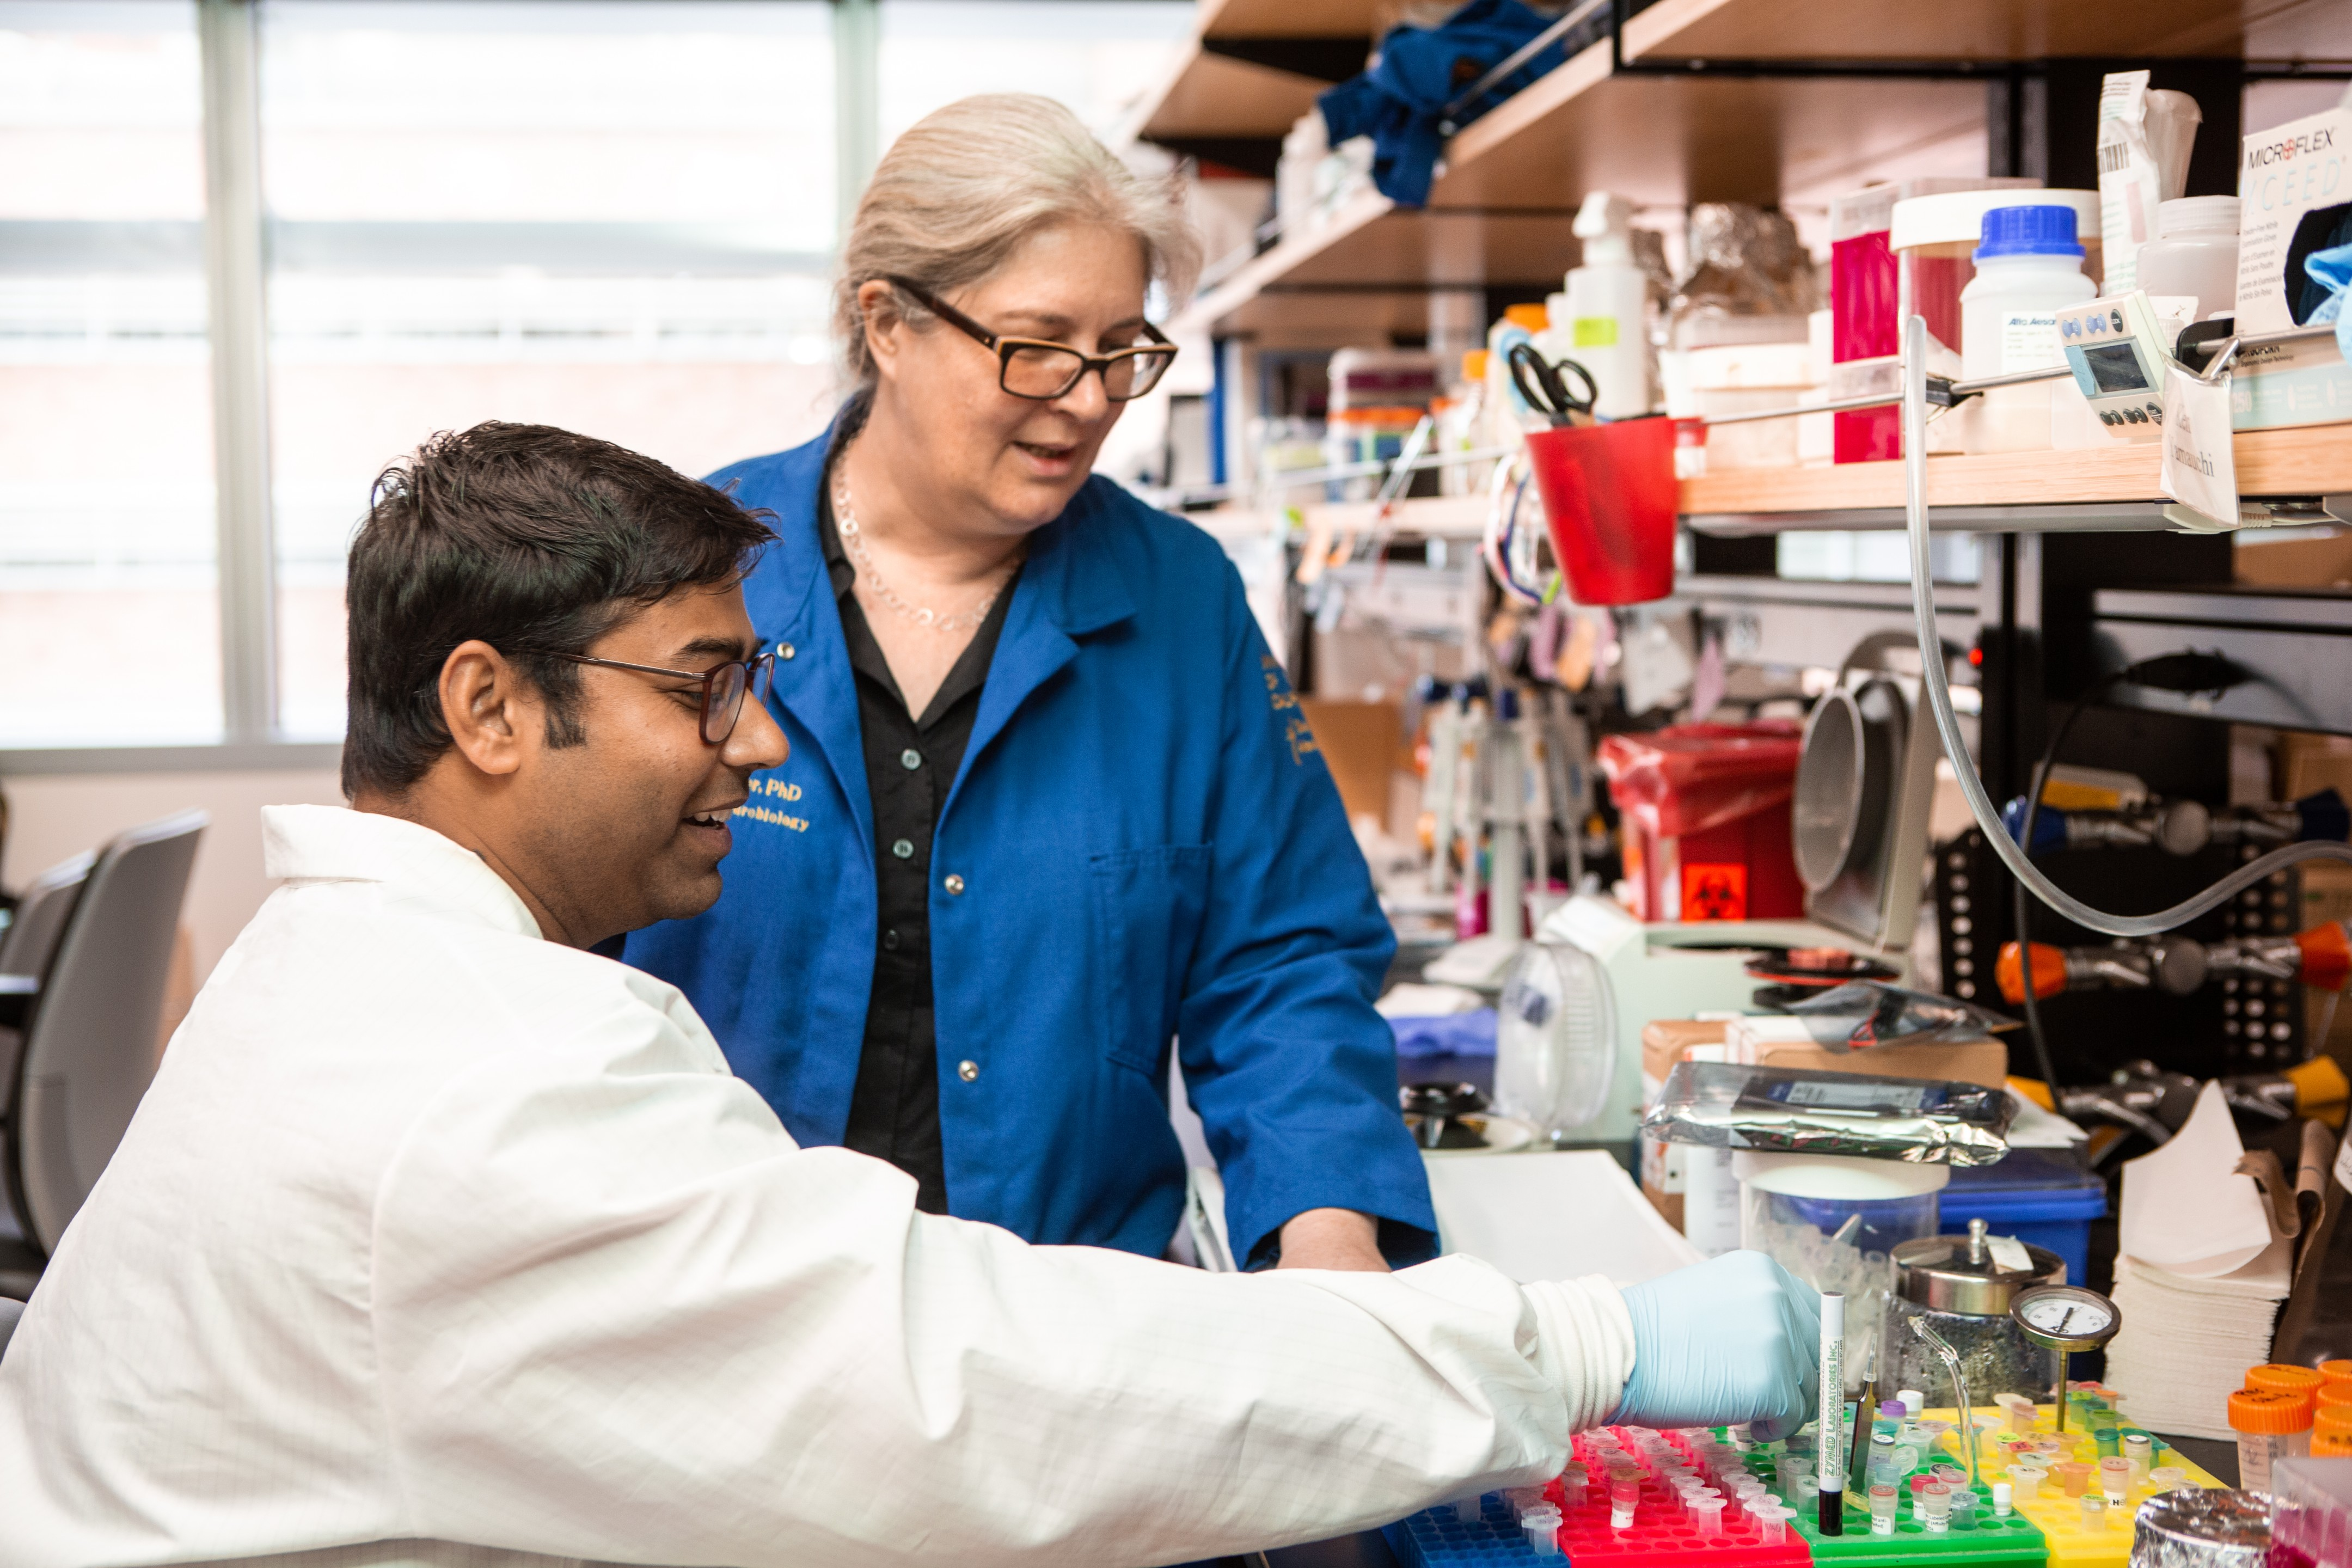 Image of one male researcher and one female researcher in a lab